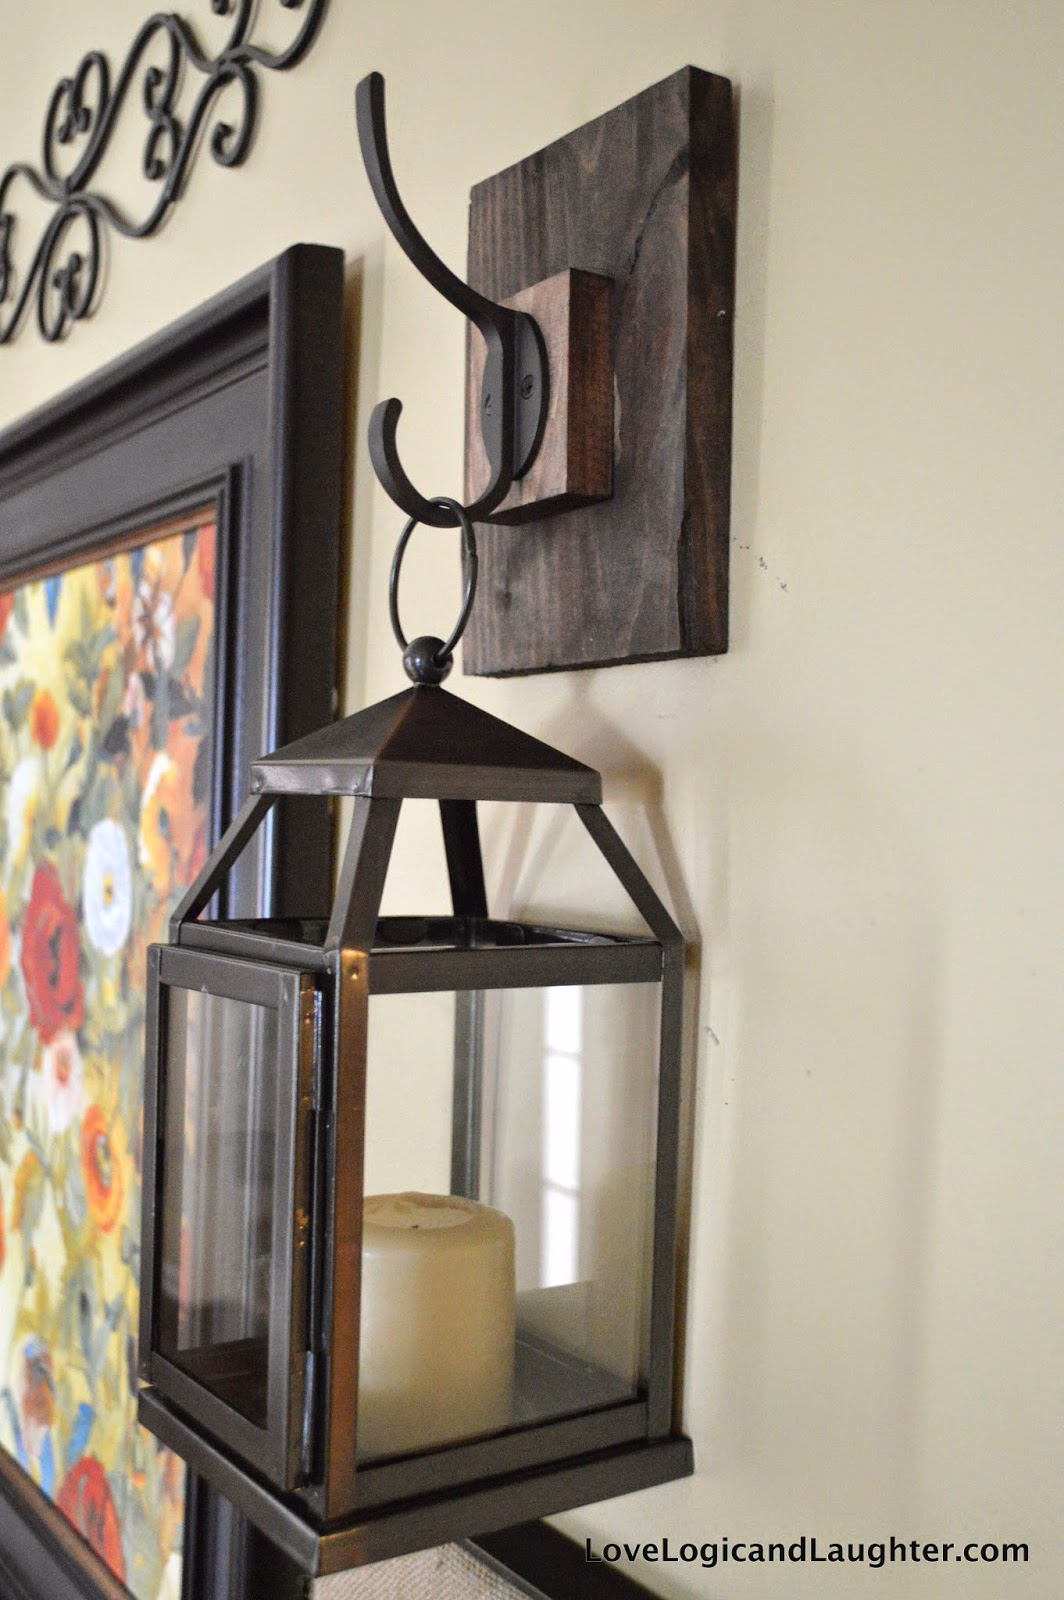 Logic and Laughter: Wall Lantern Hooks For My Entryway - DIY